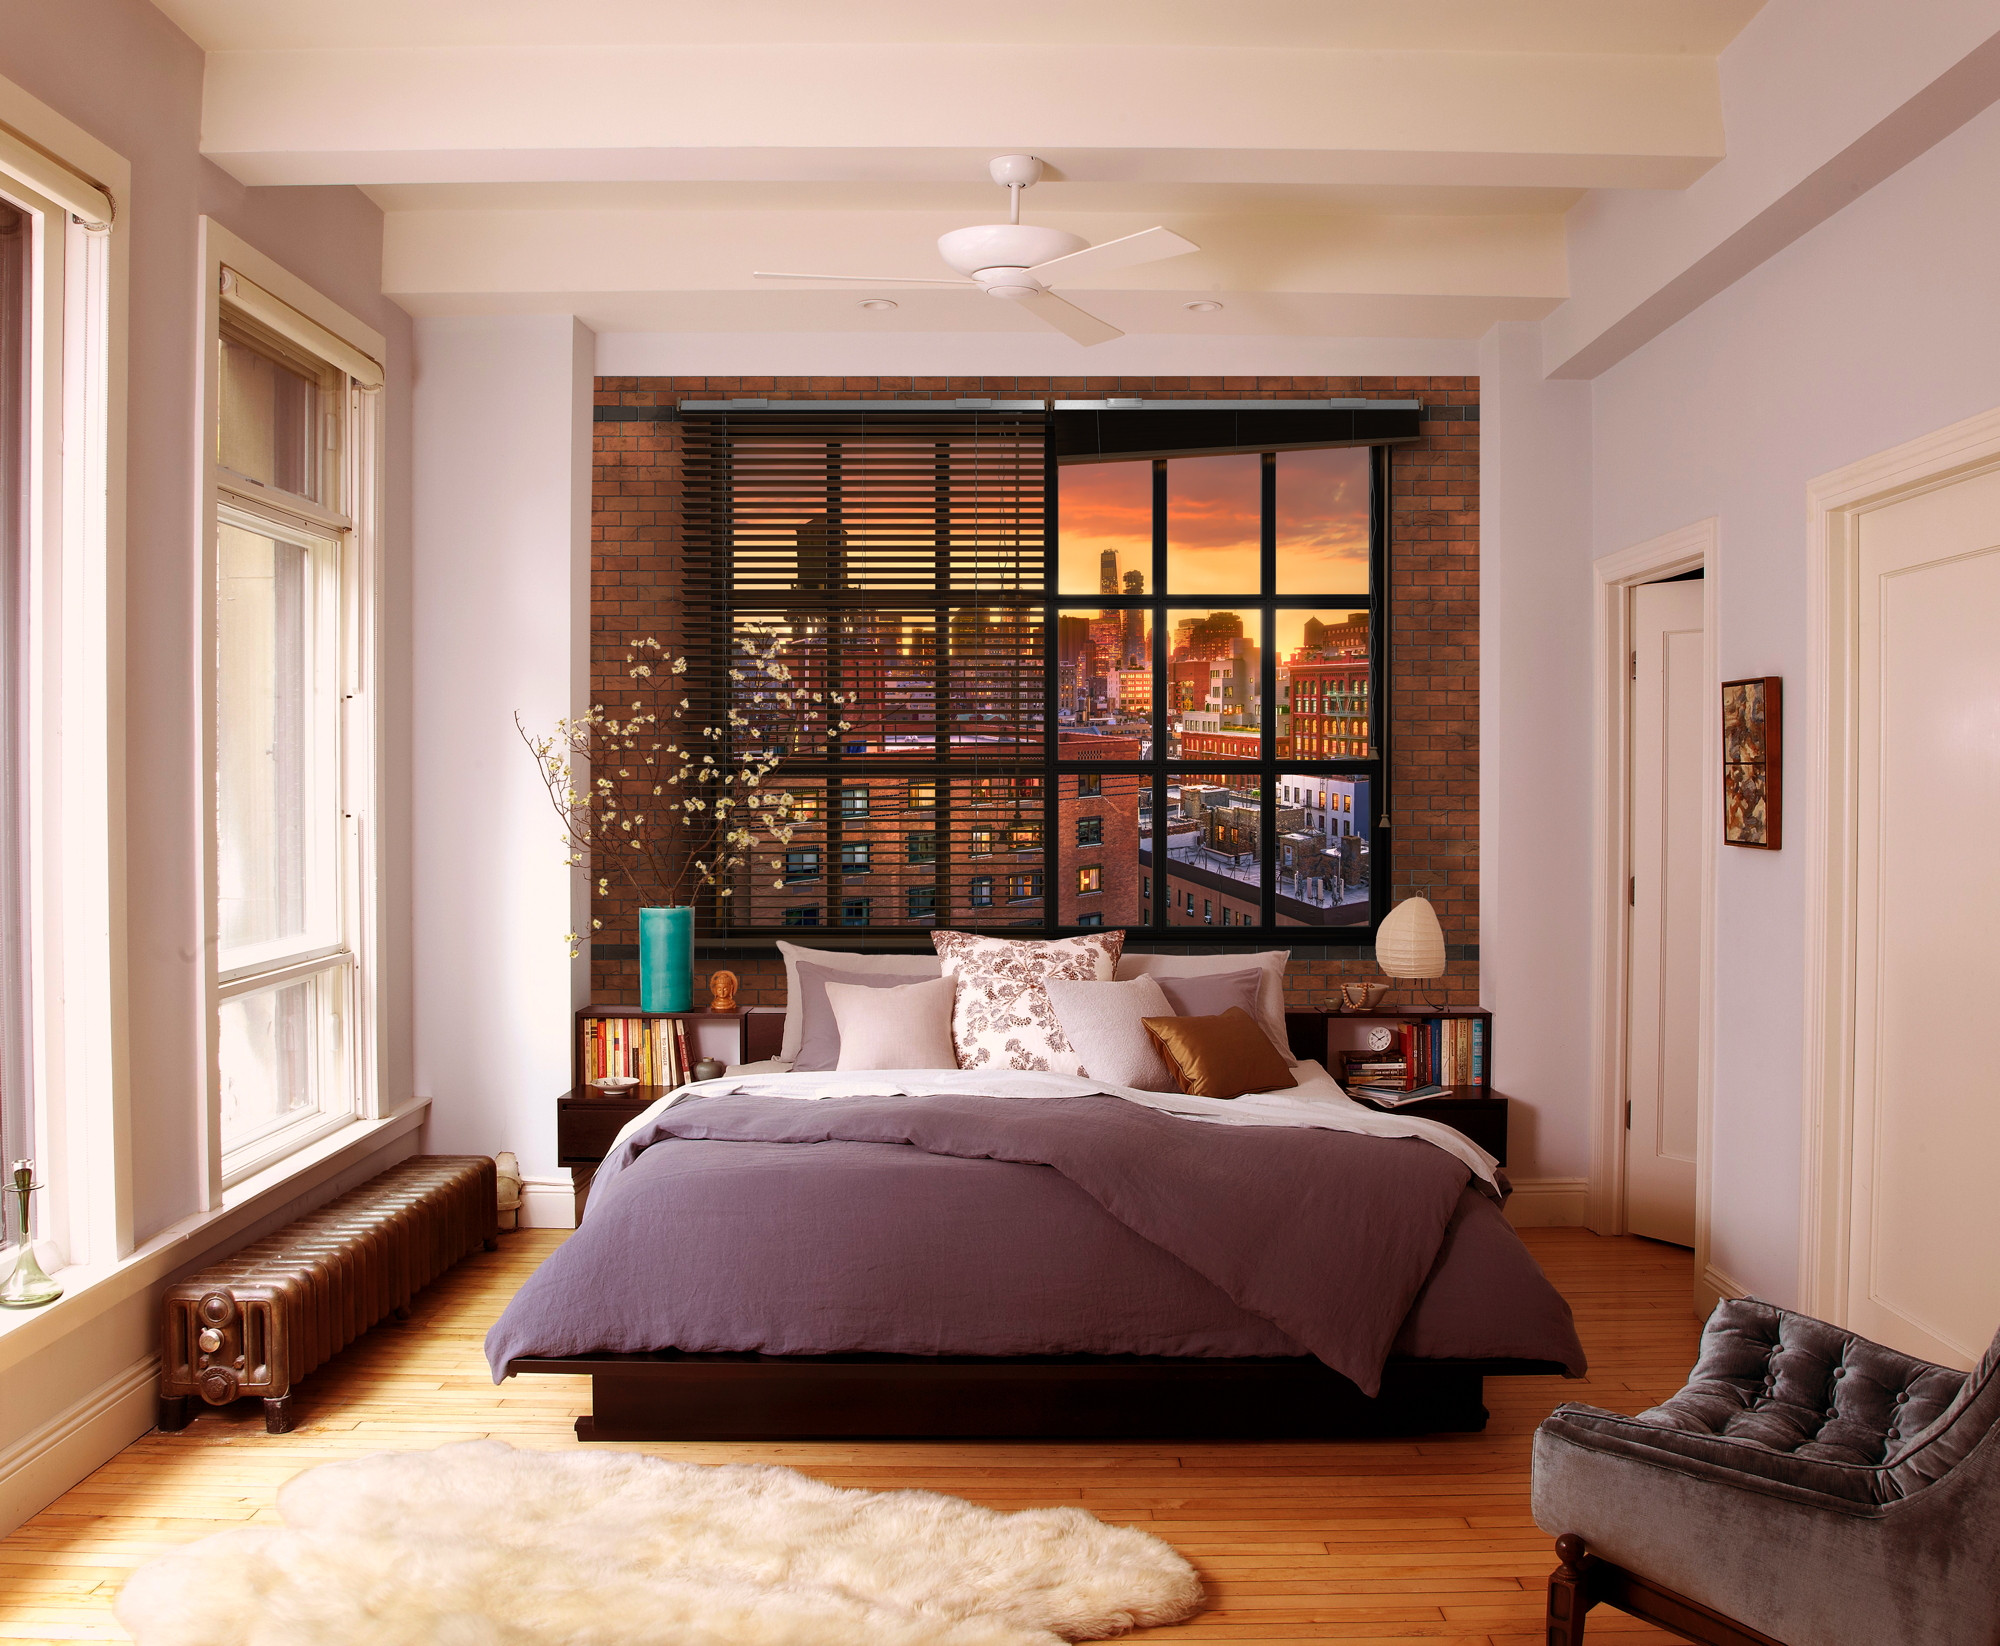 fototapete brooklyn brick von komar. Black Bedroom Furniture Sets. Home Design Ideas